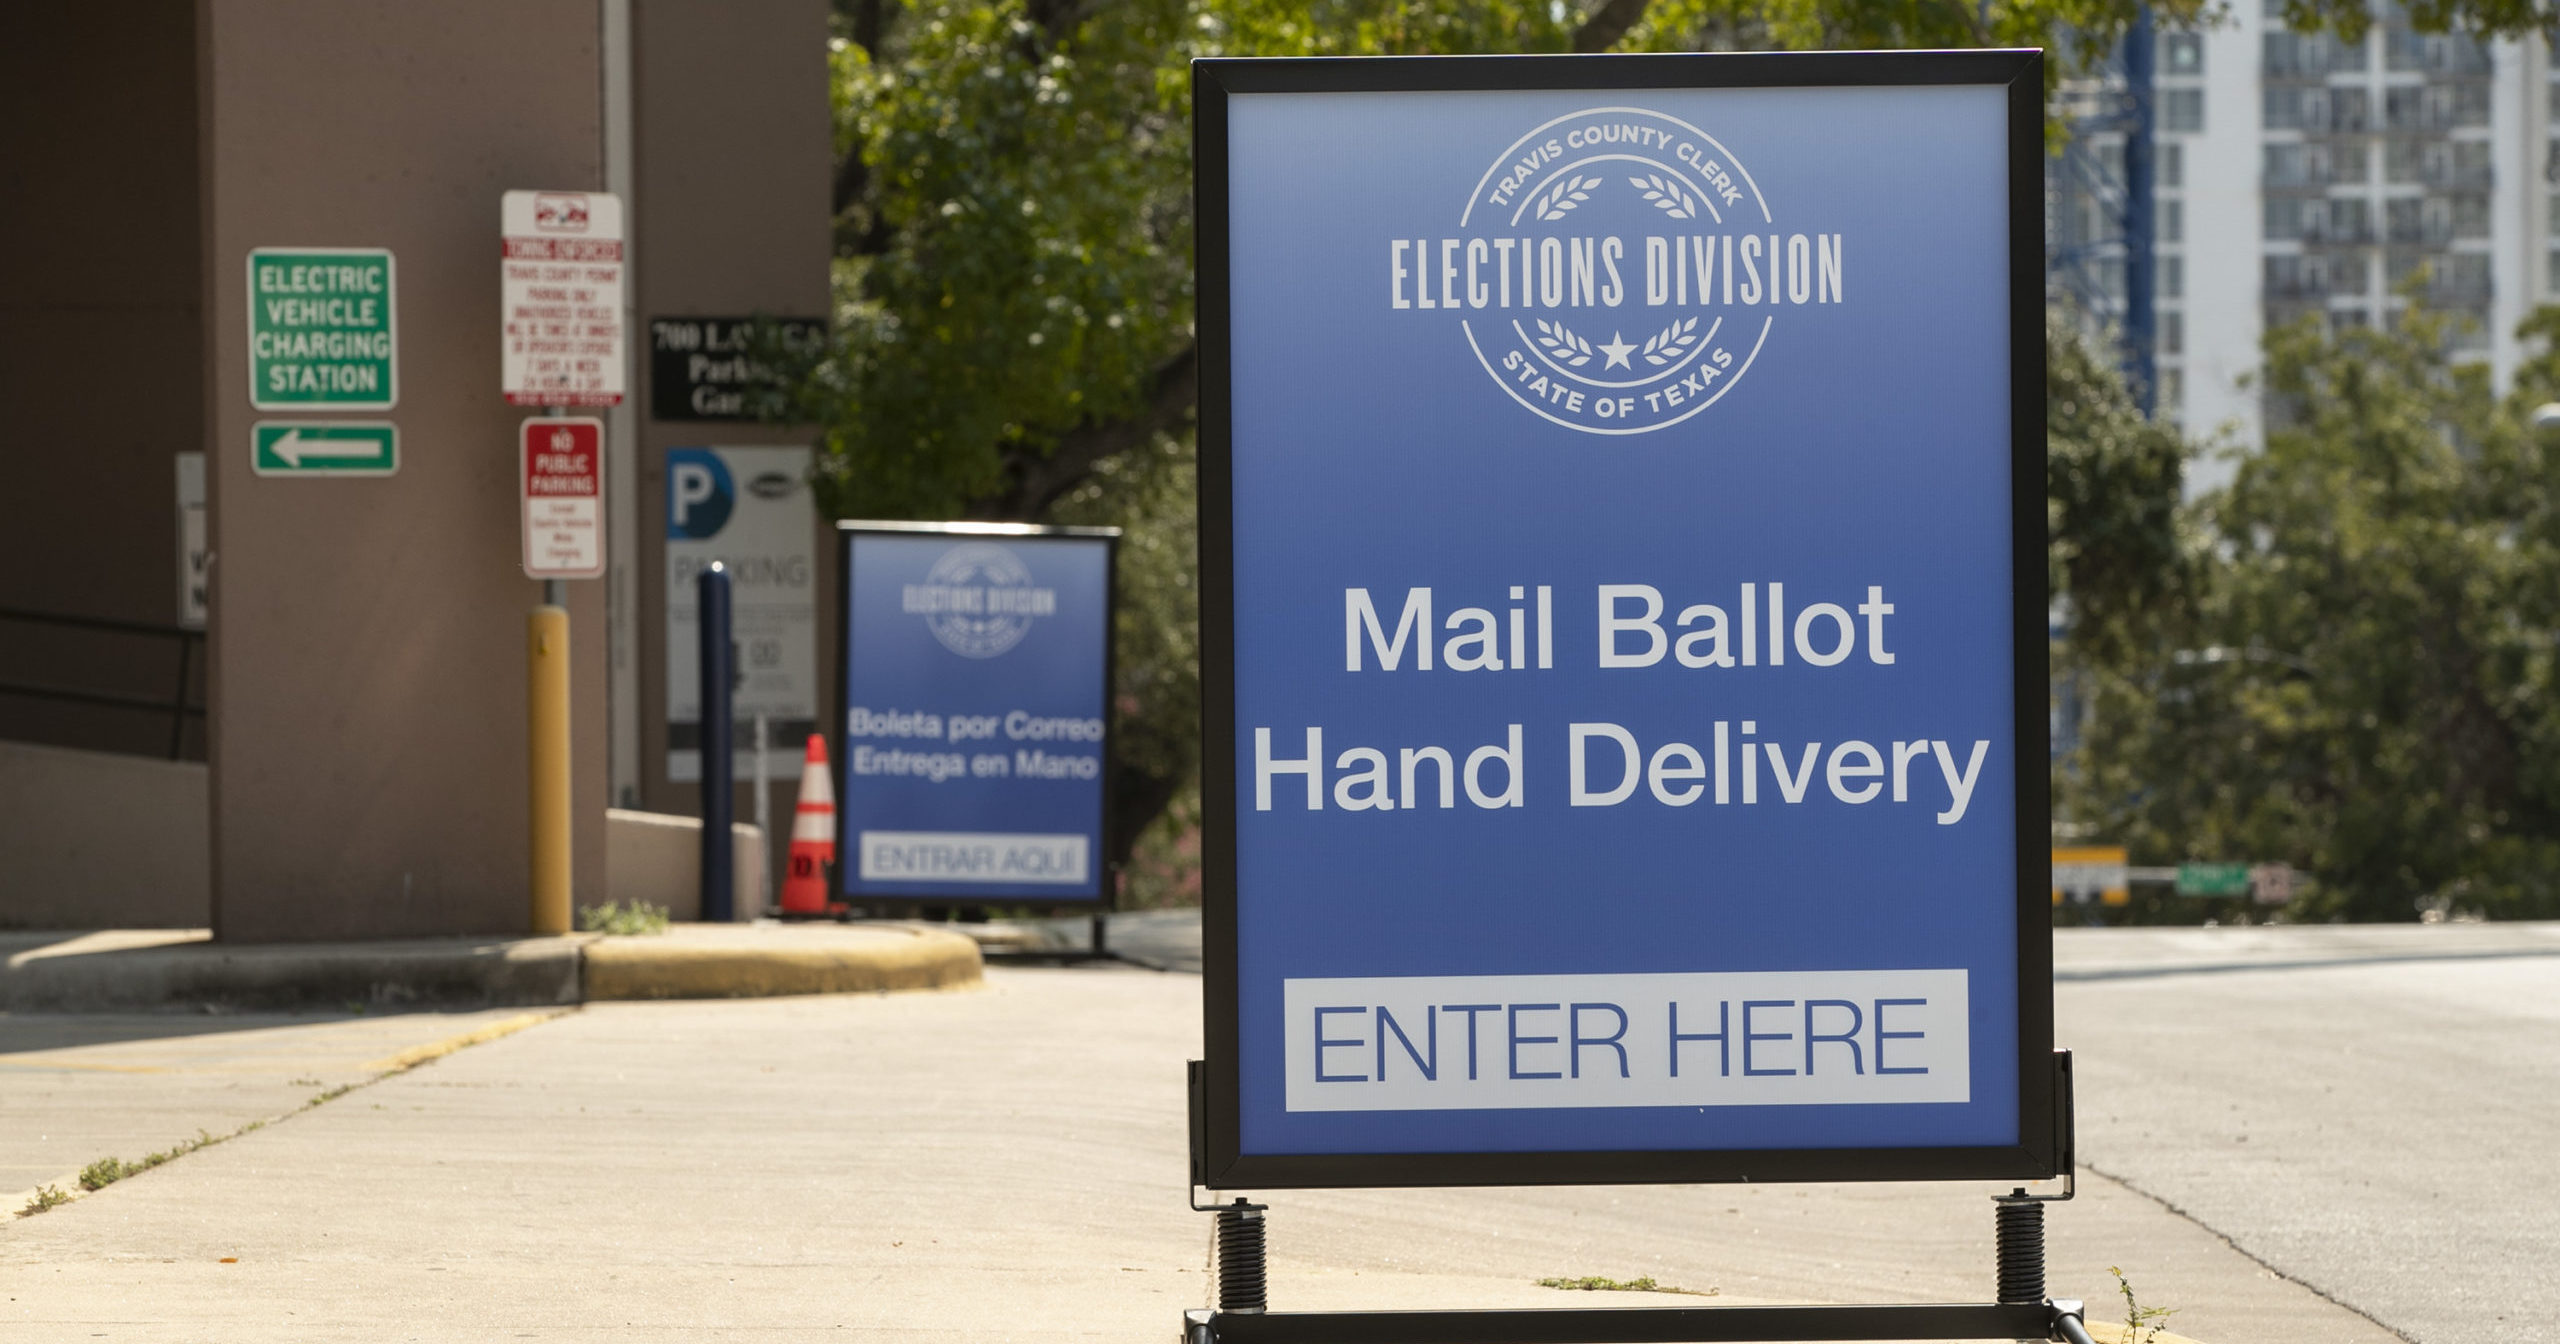 A sign indicates a ballot drop-off location in Austin, Texas, on Oct. 1, 2020. The number of locations where Texas voters can drop off their mail-in ballots has been vastly reduced to ensure poll security, Gov. Greg Abbott said.